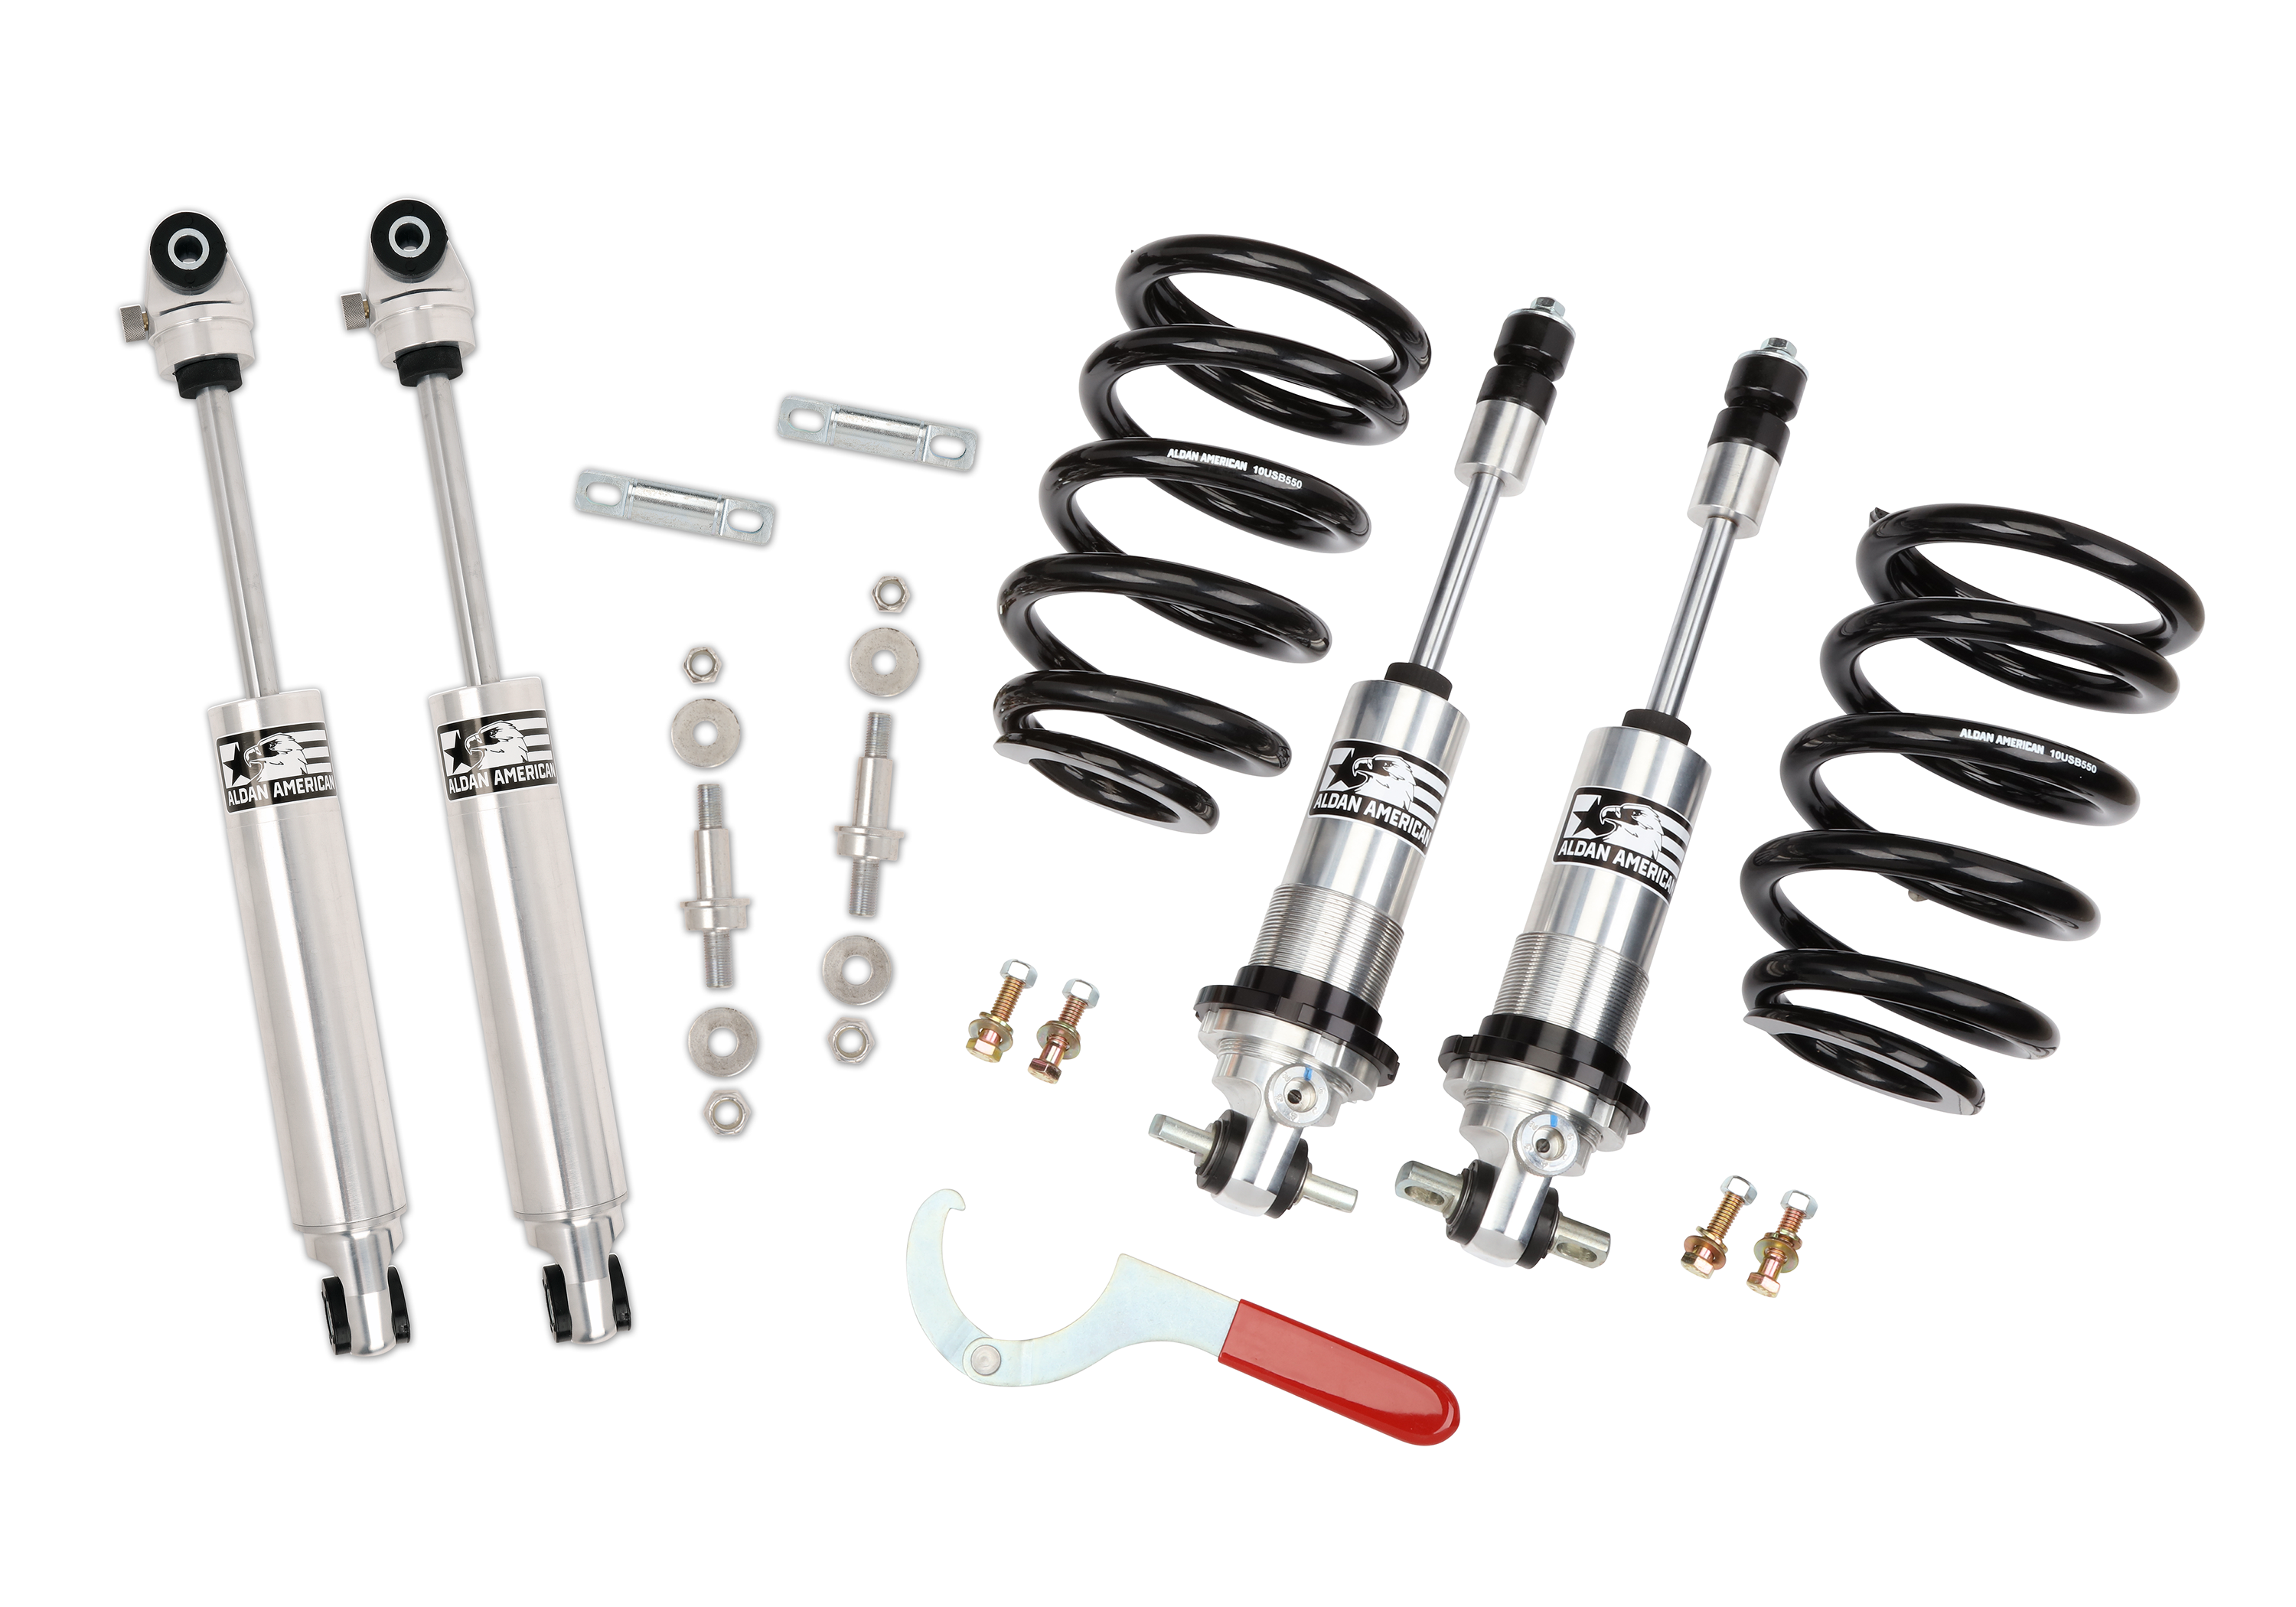 Aldan American 300168 Suspension Package, Road Comp, GM, 64-67 A-Body, Coilovers with Shocks, SB, Kit